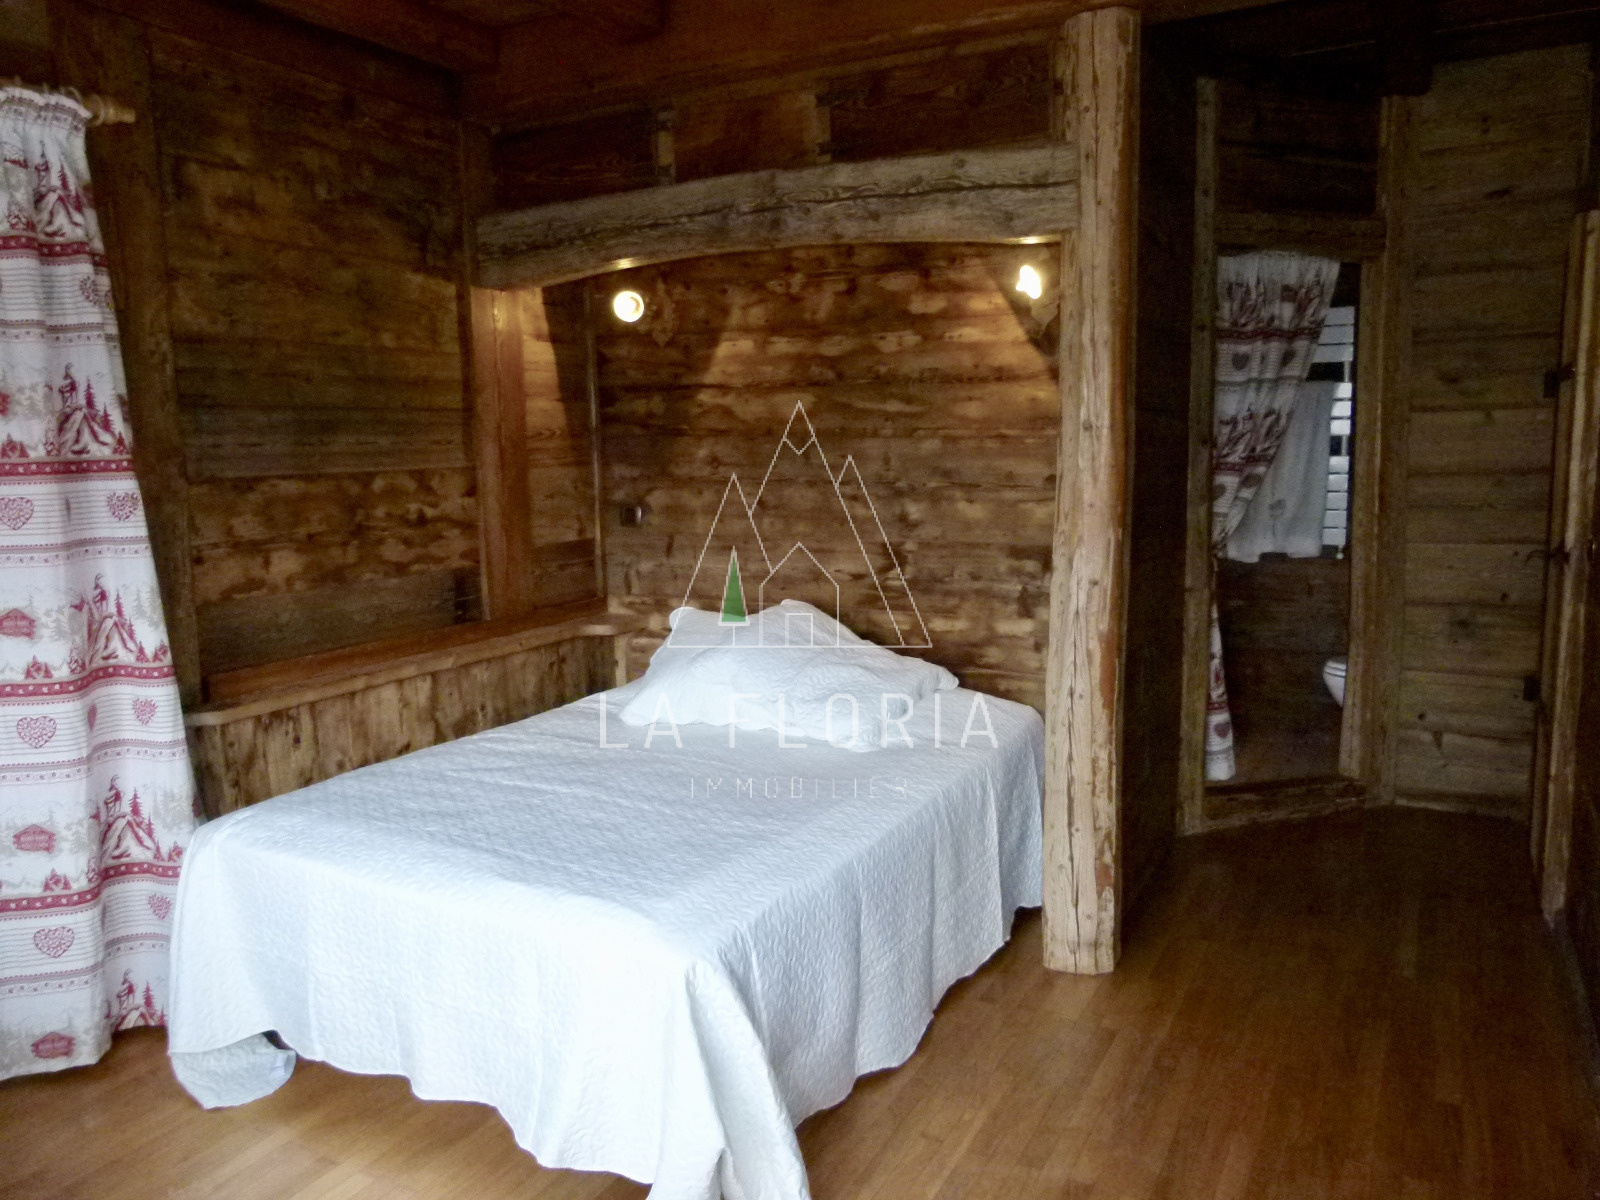 AMAZING REFURBISHED TRIPLEX APARTMENT IN FARM, CHAMONIX LES MOUSSOUX